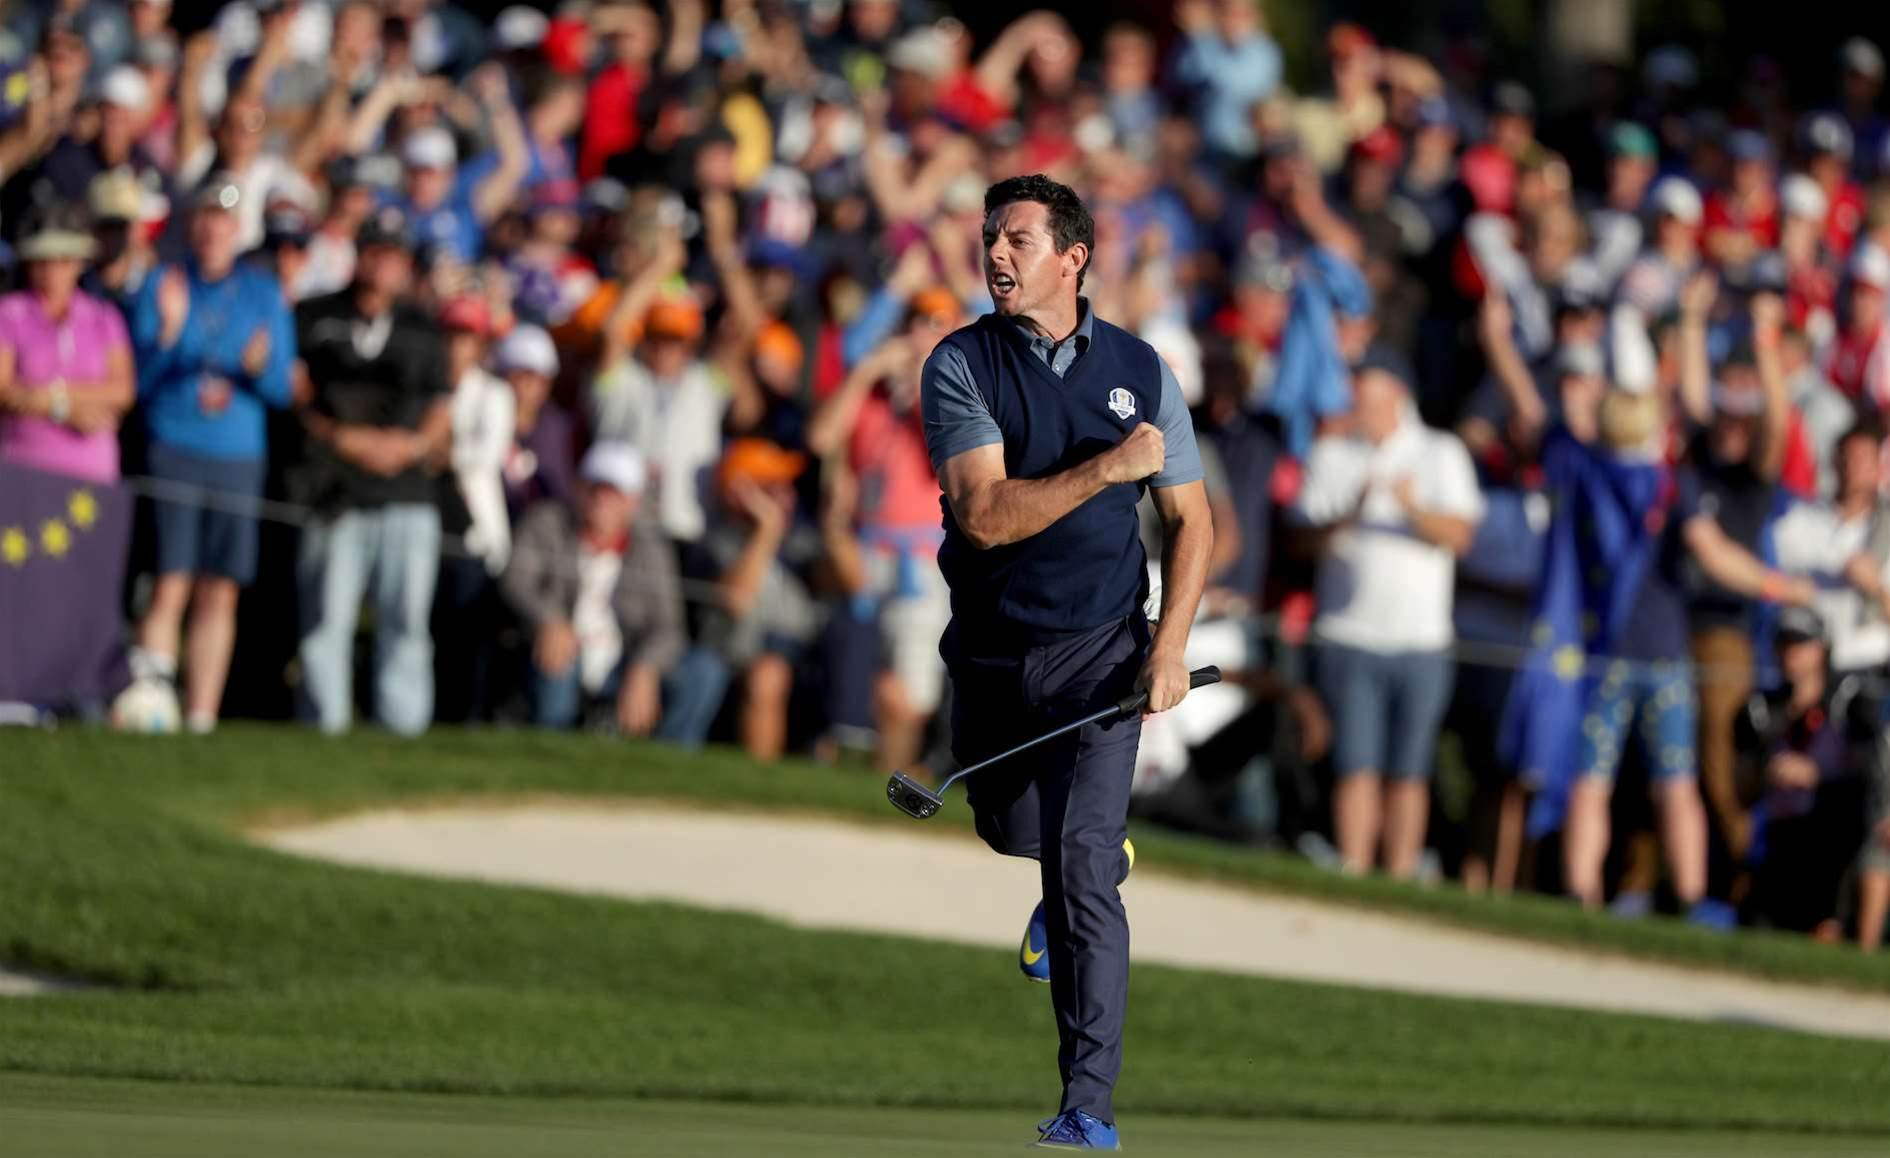 RYDER CUP: McIlroy leads spirited European fightback